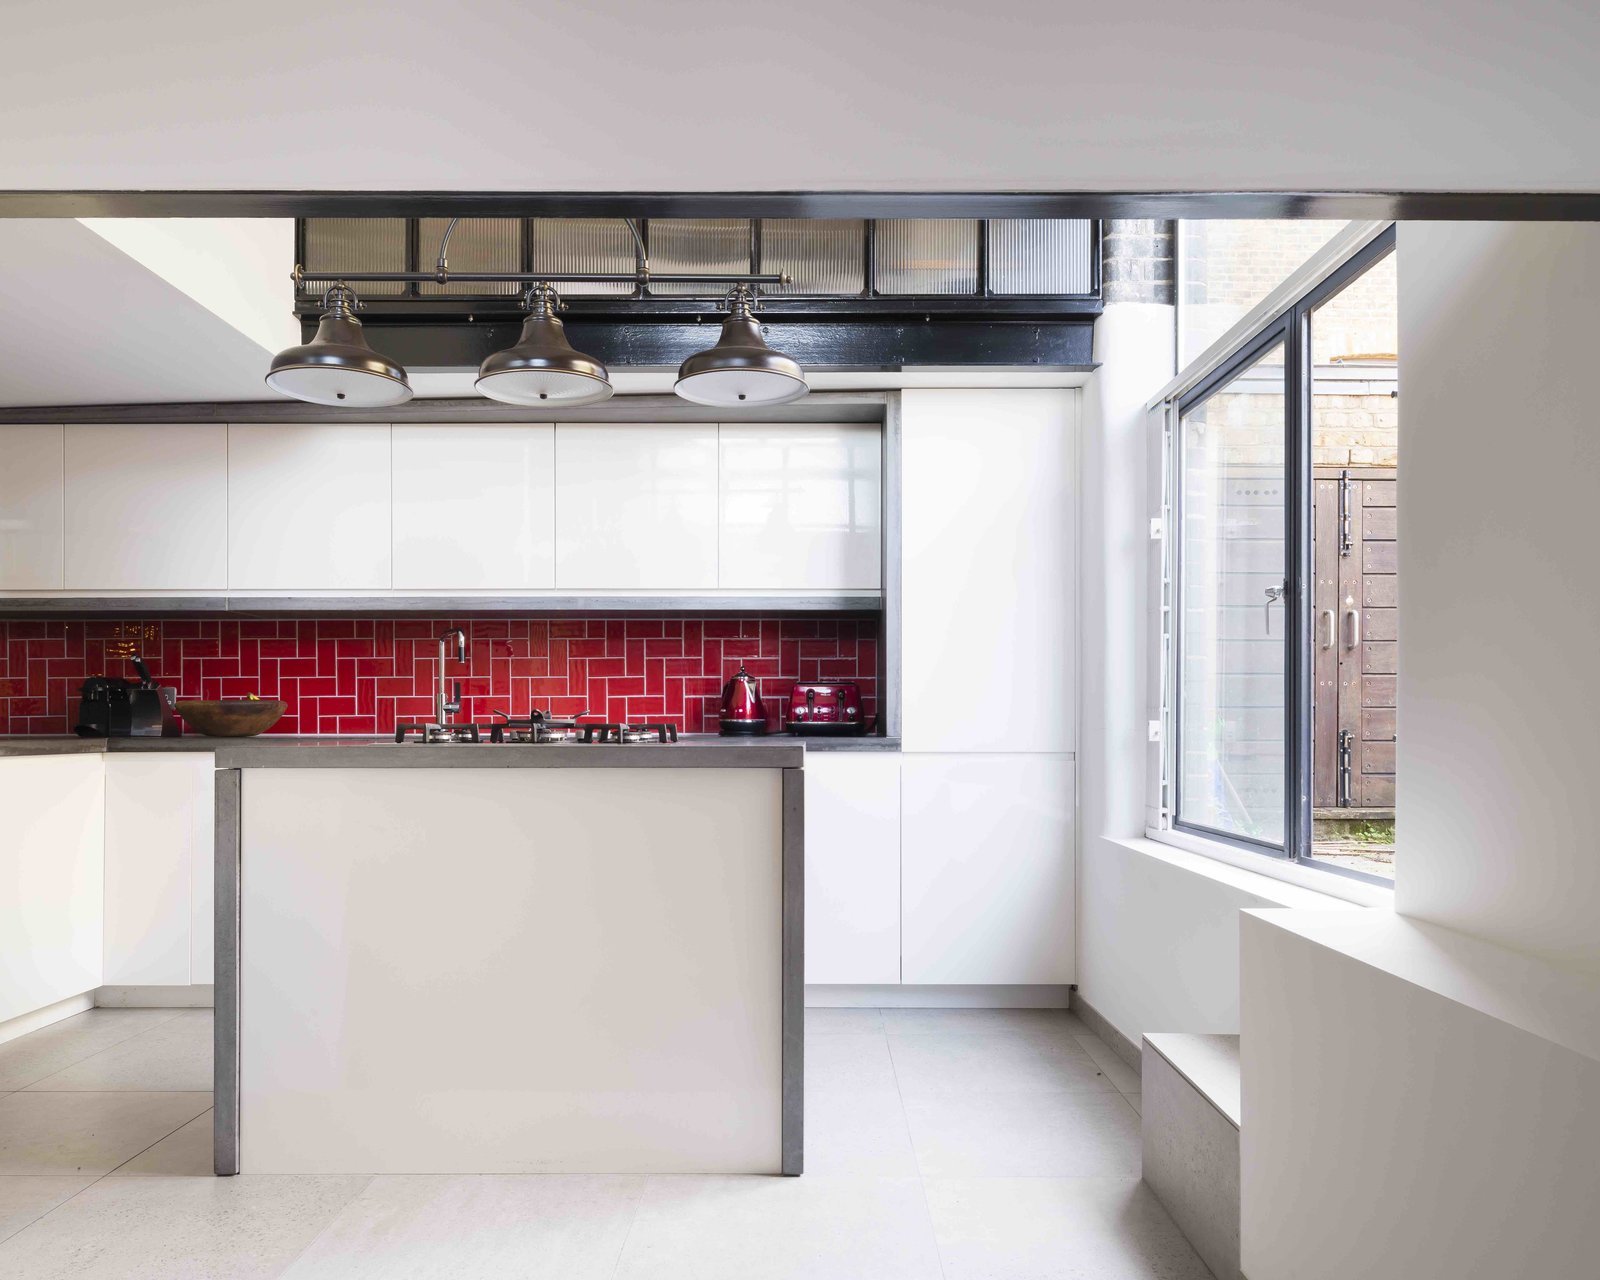 Kitchen, Concrete Counter, White Cabinet, Ceramic Tile Floor, Subway Tile Backsplashe, Pendant Lighting, Refrigerator, Range, and Drop In Sink  Photo 6 of 12 in An Old Grain Warehouse on the River Thames Is Transformed Into an Industrial-Modern Home